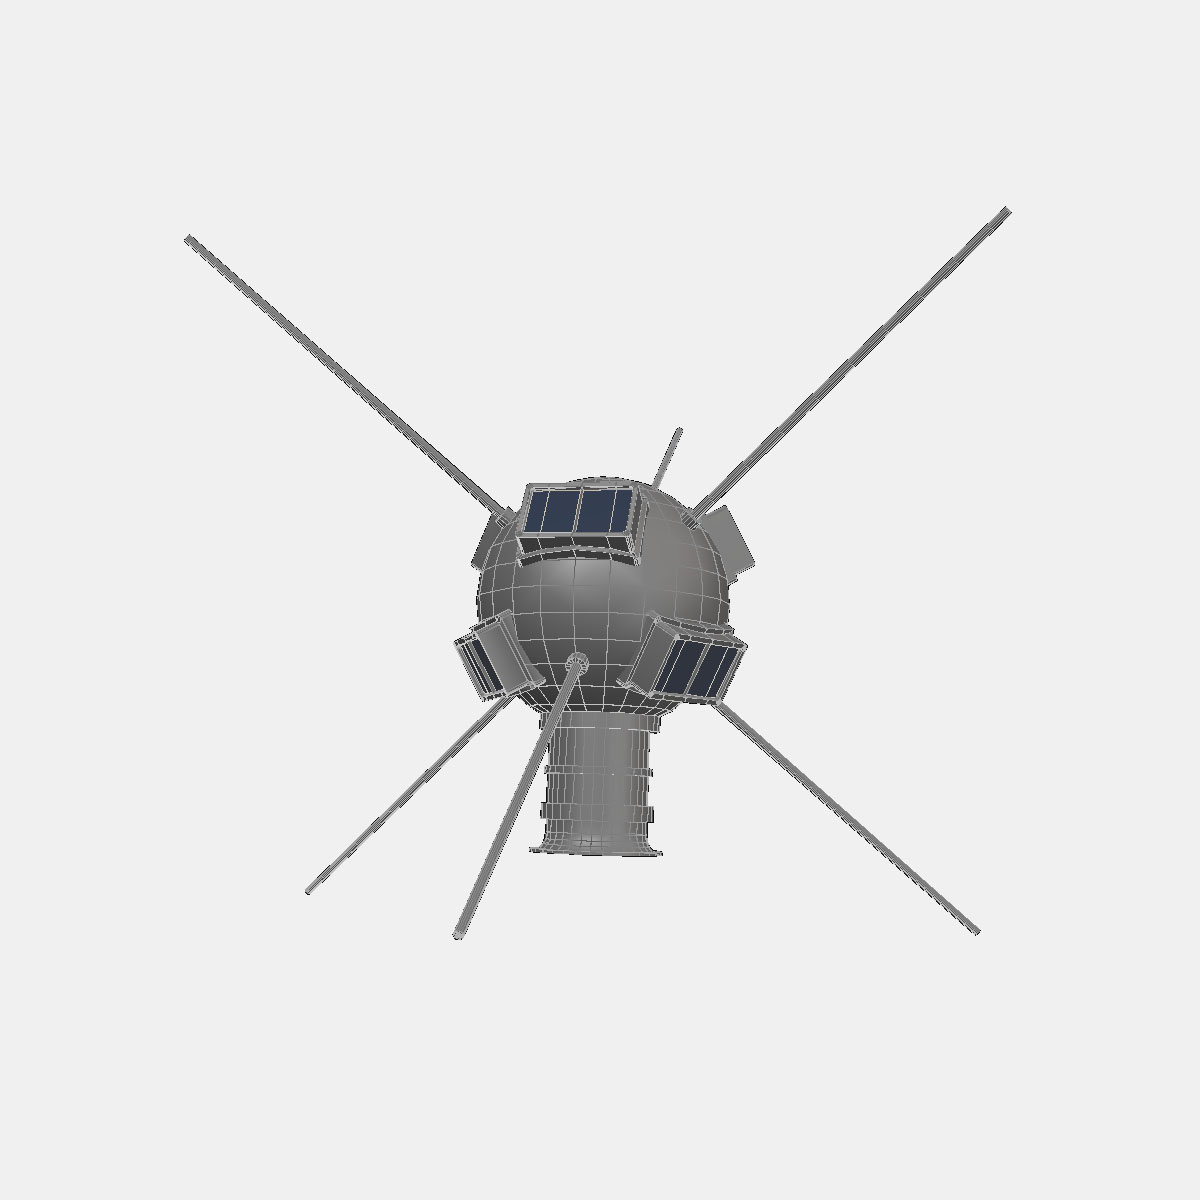 Vanguard I Satellite 3d model 3ds dxf fbx blend cob dae X obj 163932